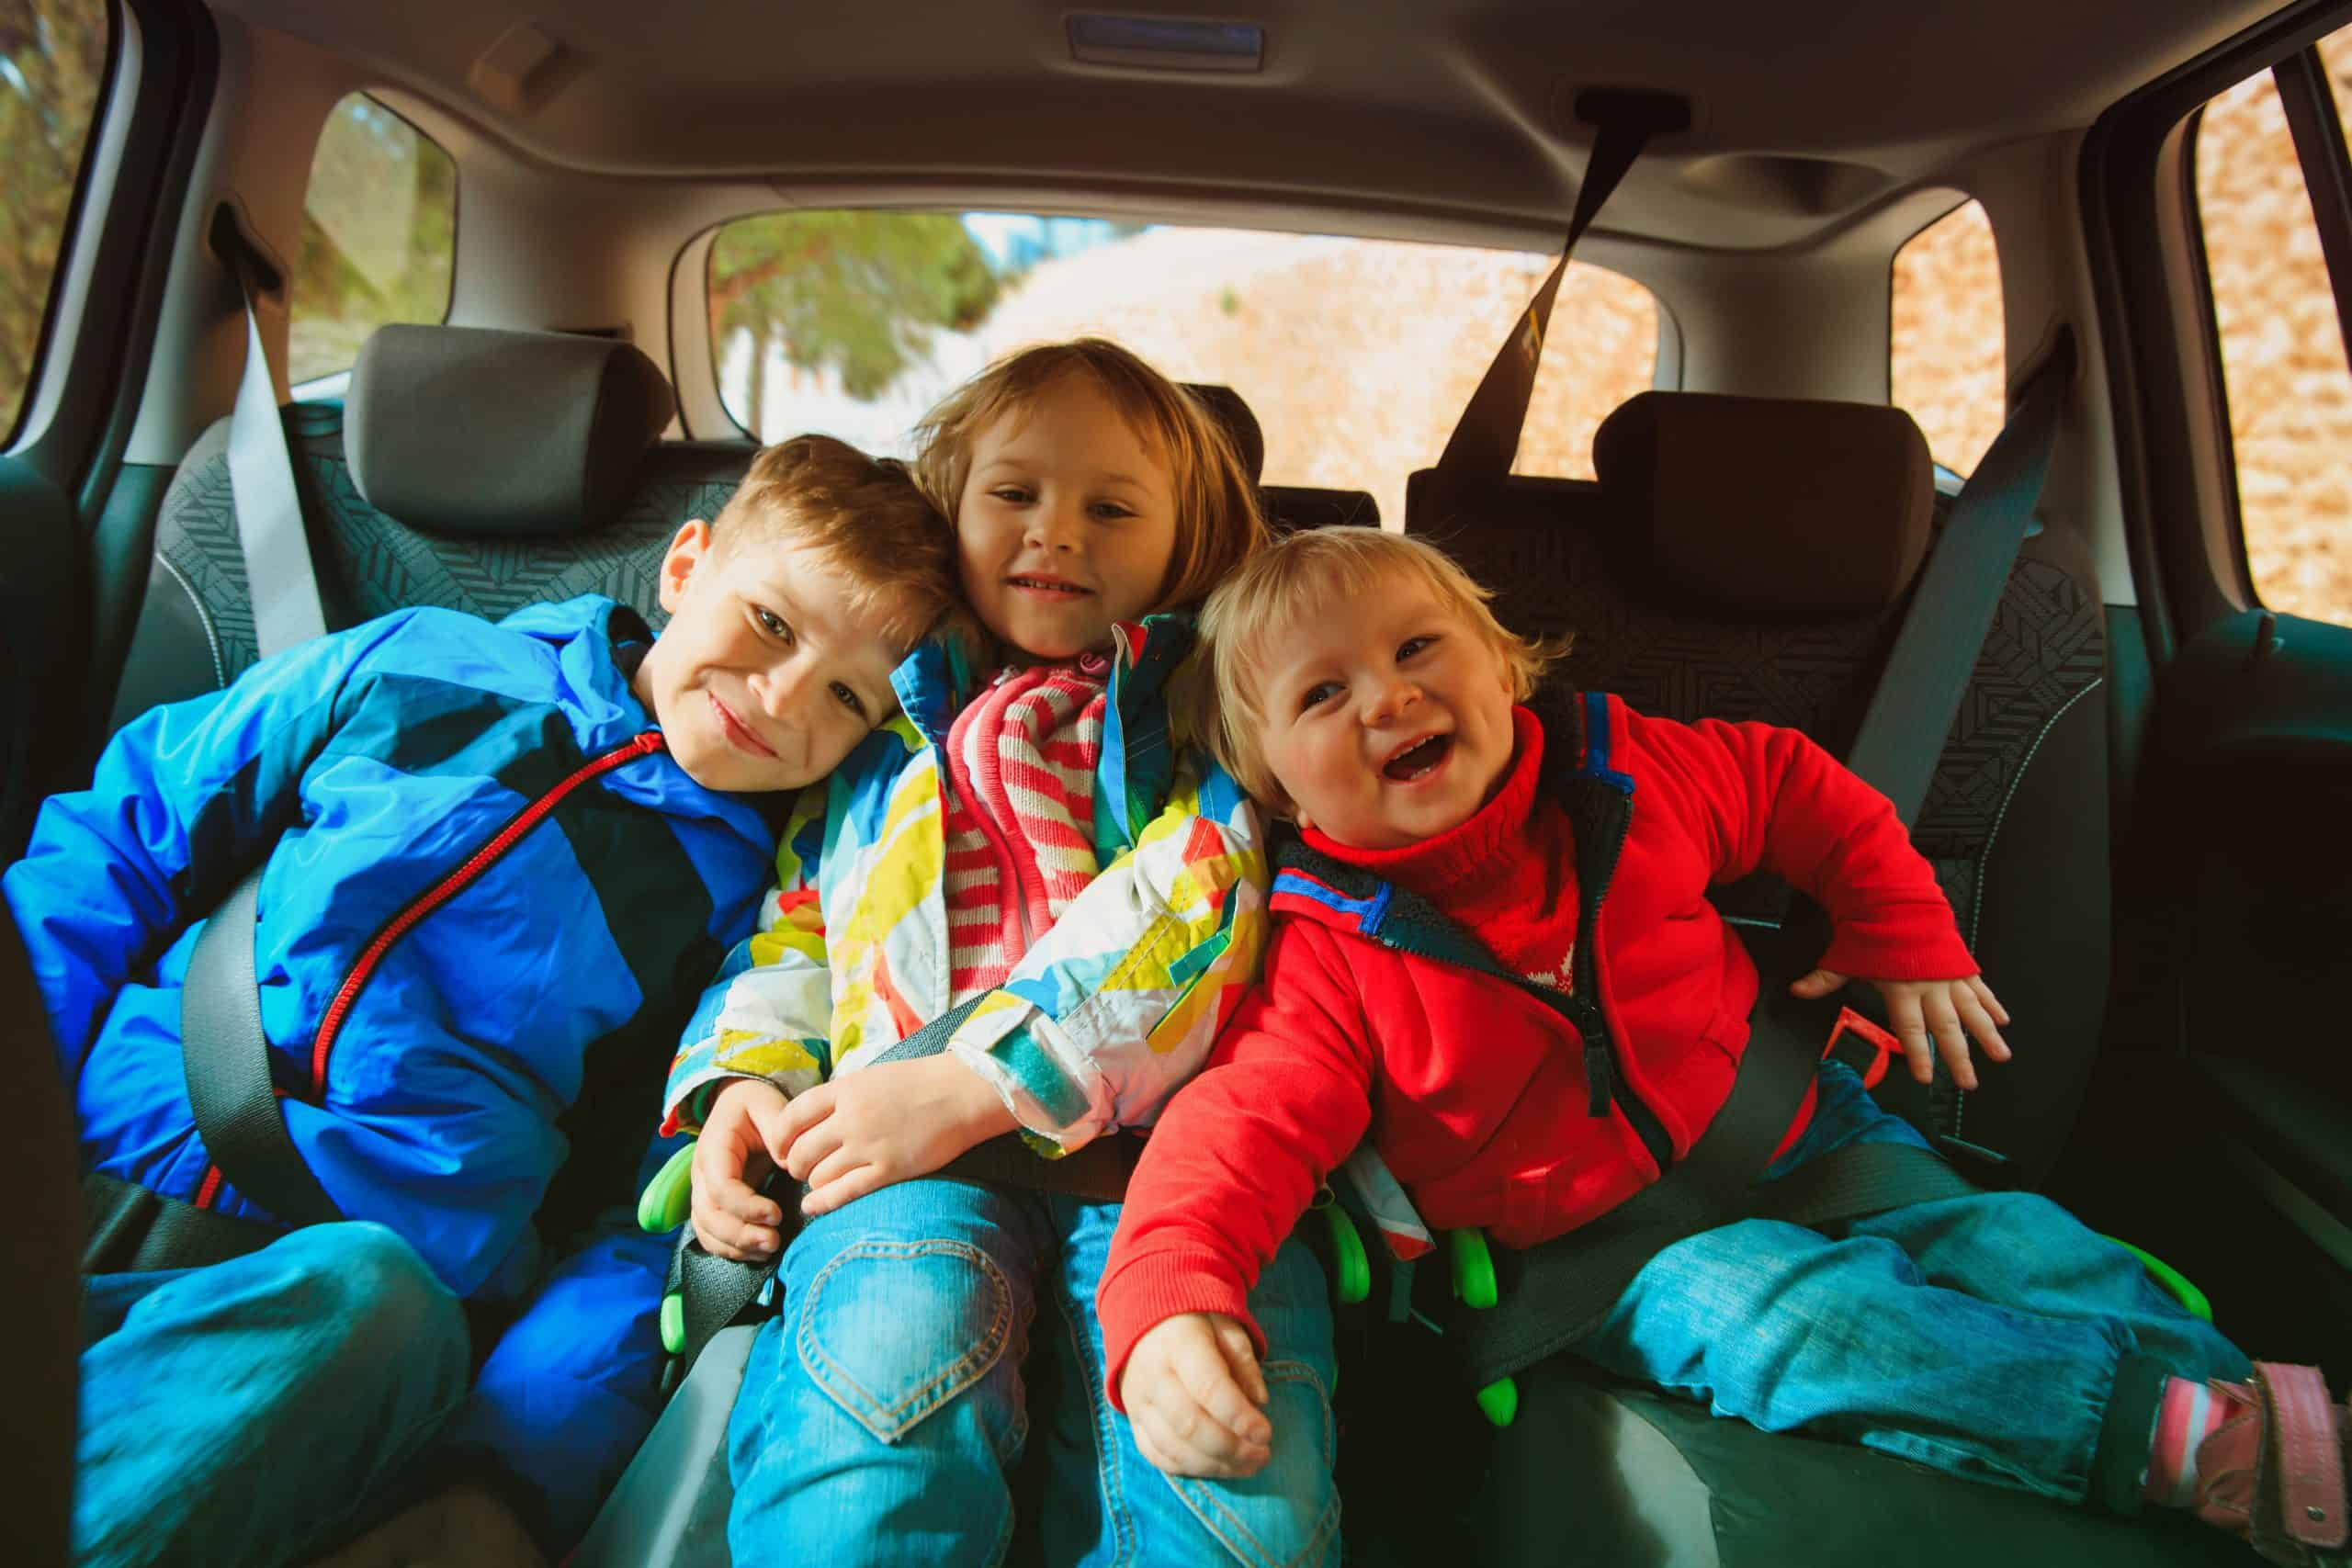 happy kids enjoy travel by car, family adventure, vacation concept